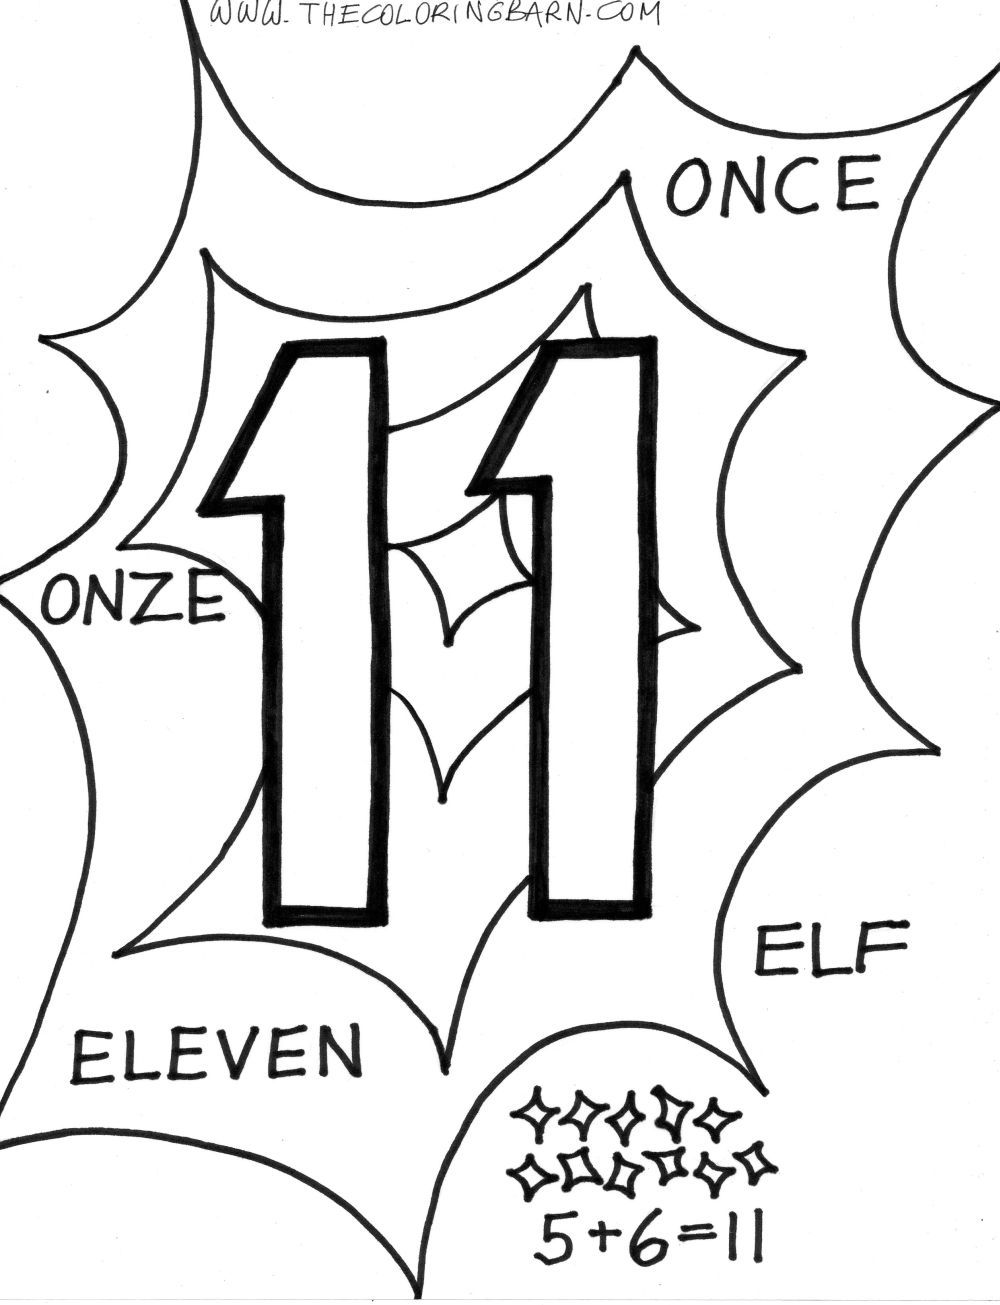 Free Printable Coloring Page Number 11 Coloring Page For Kids Dibujo Del Numero 11 Para Coloring Pages Printable Coloring Pages Free Printable Coloring Pages